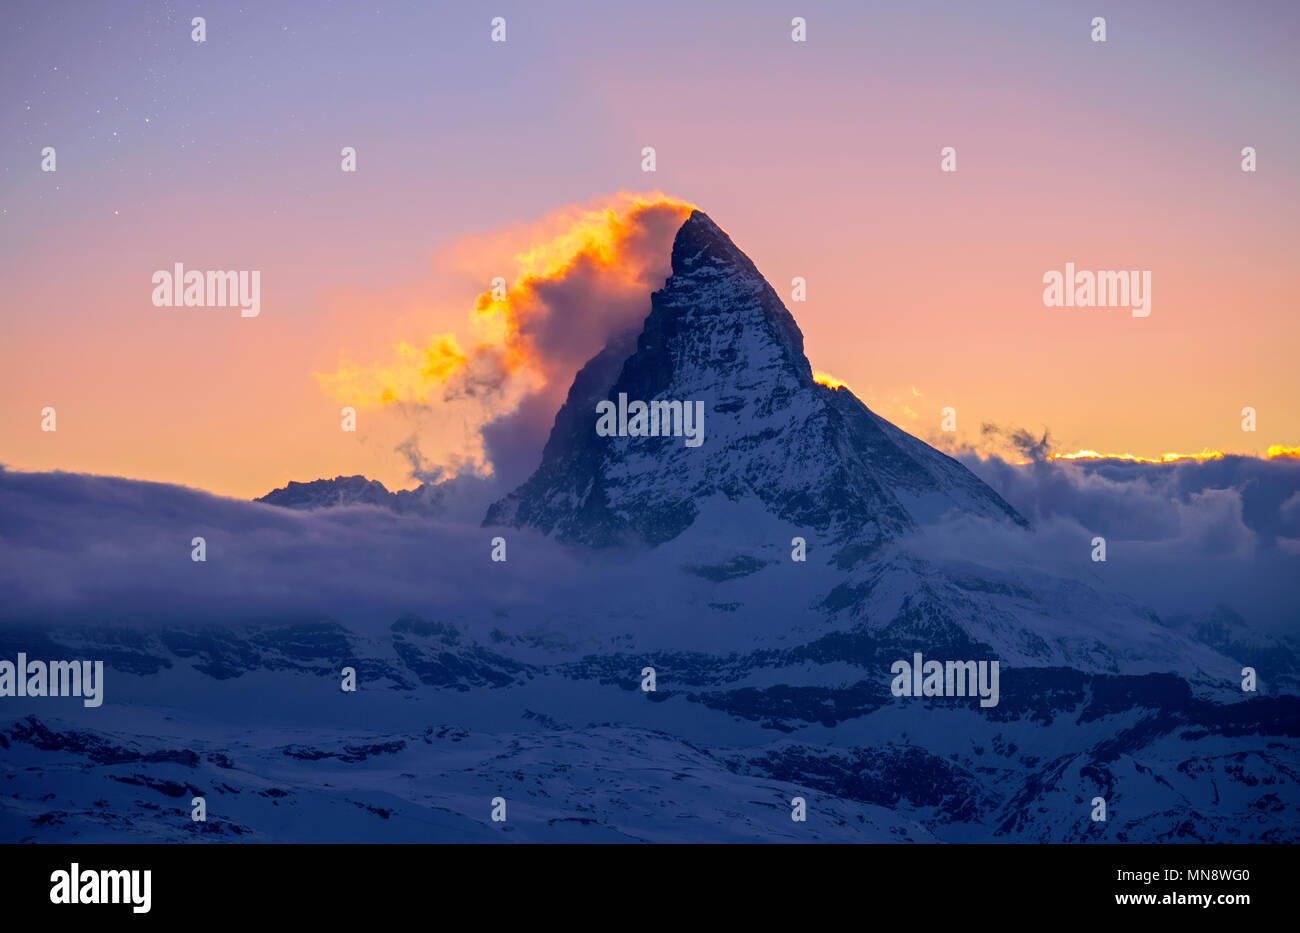 matterhorn-on-fire-MN8WG0.jpg